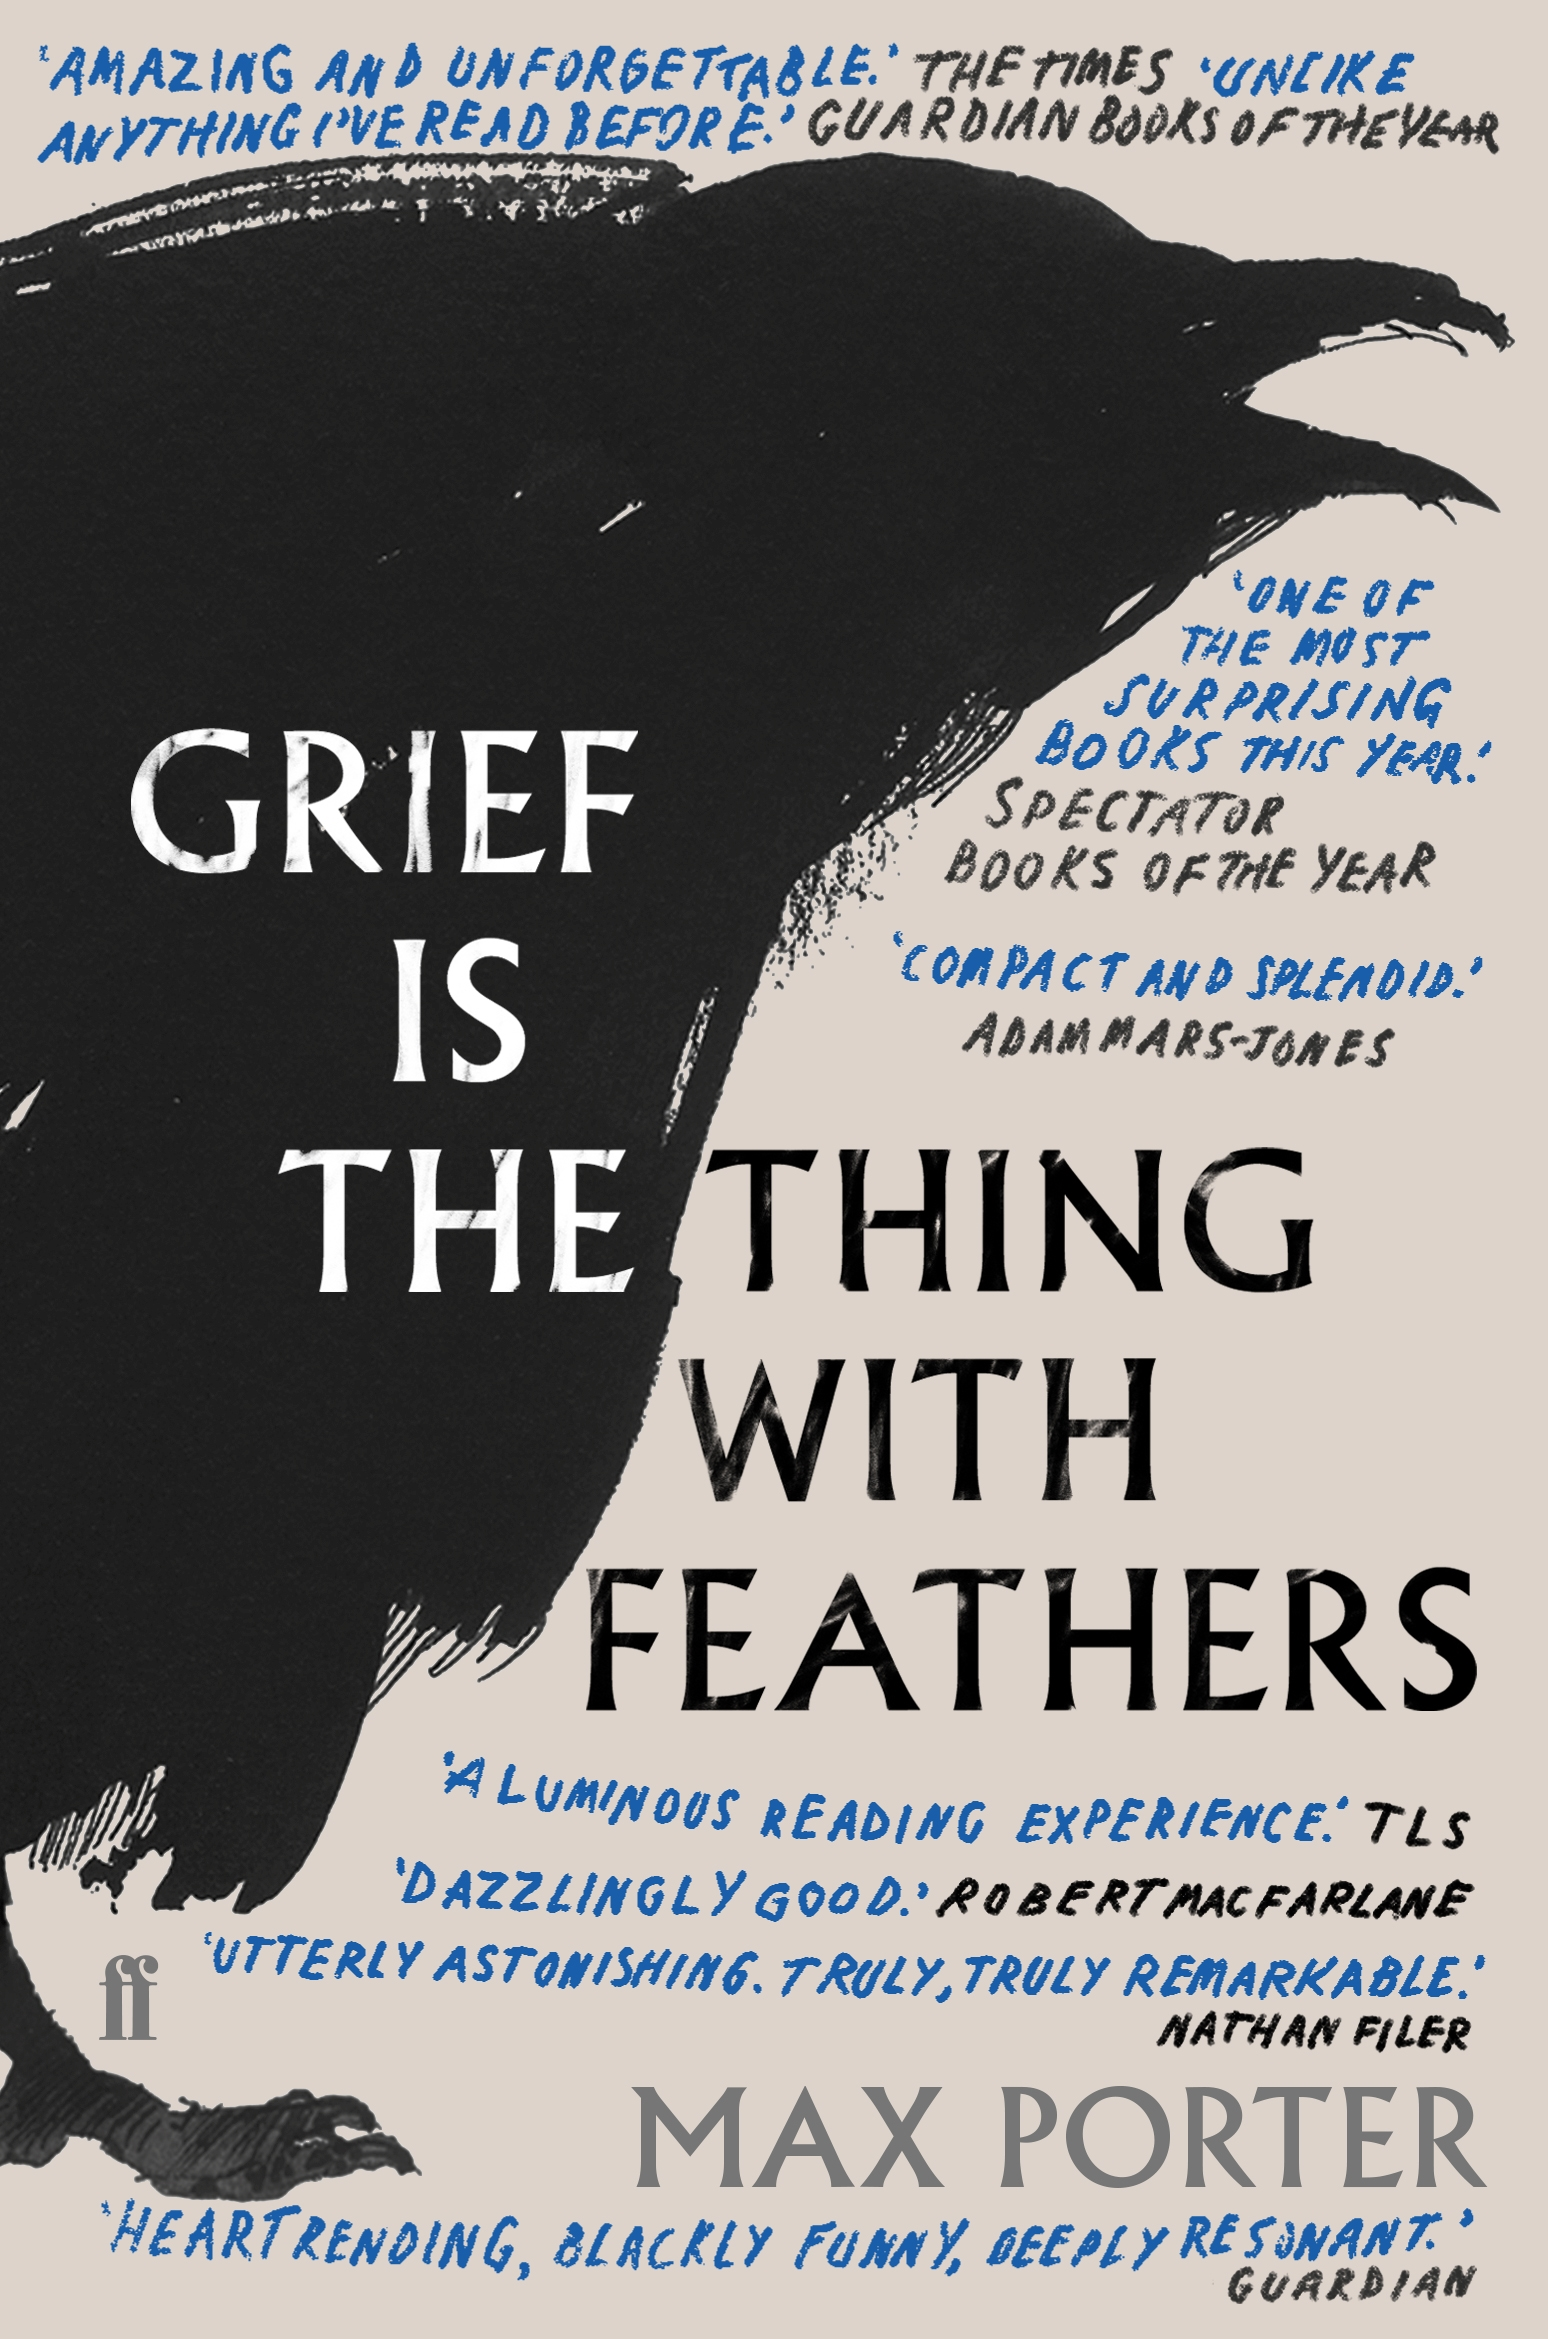 Grief is the Thing with Feathers by Max Porter, published by Faber & Faber